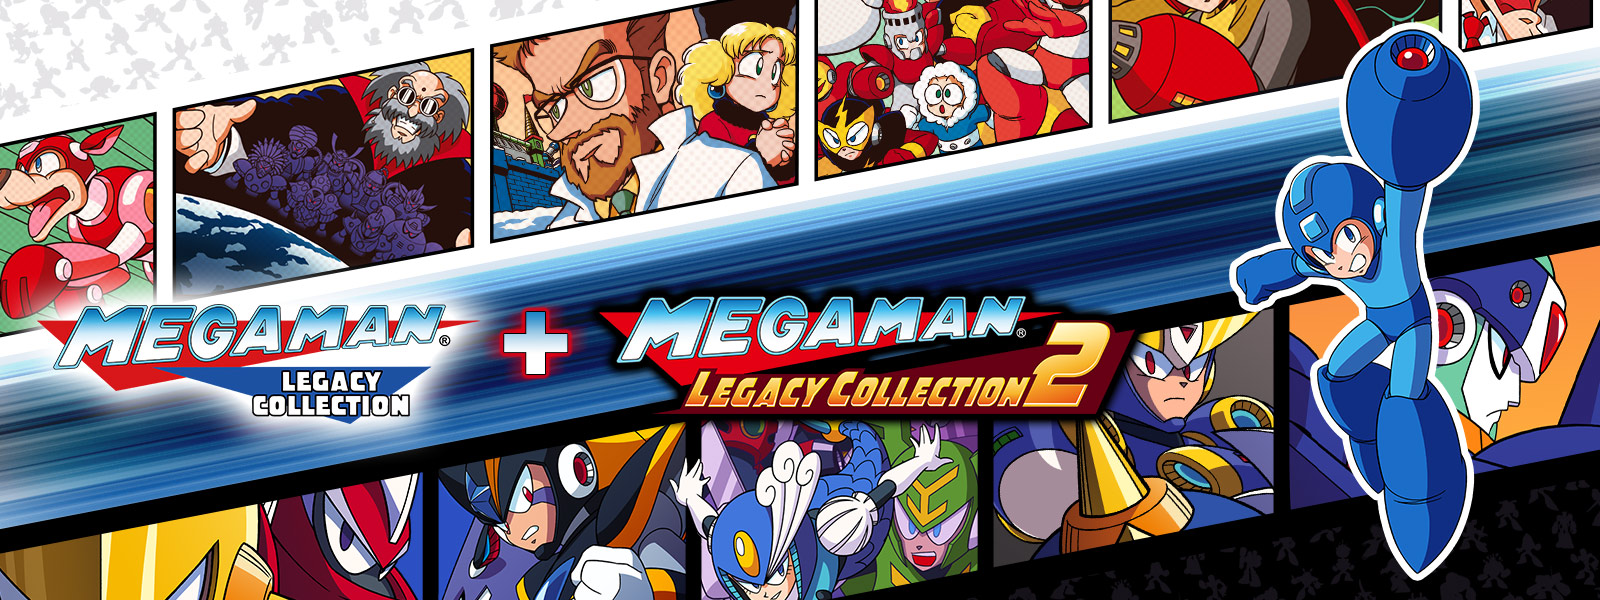 Mega Man Legacy Collection + Mega Man Legacy Collection 2, Mega Man holds up his buster gun on top of a background collage of multiple mega man characters in a film strip